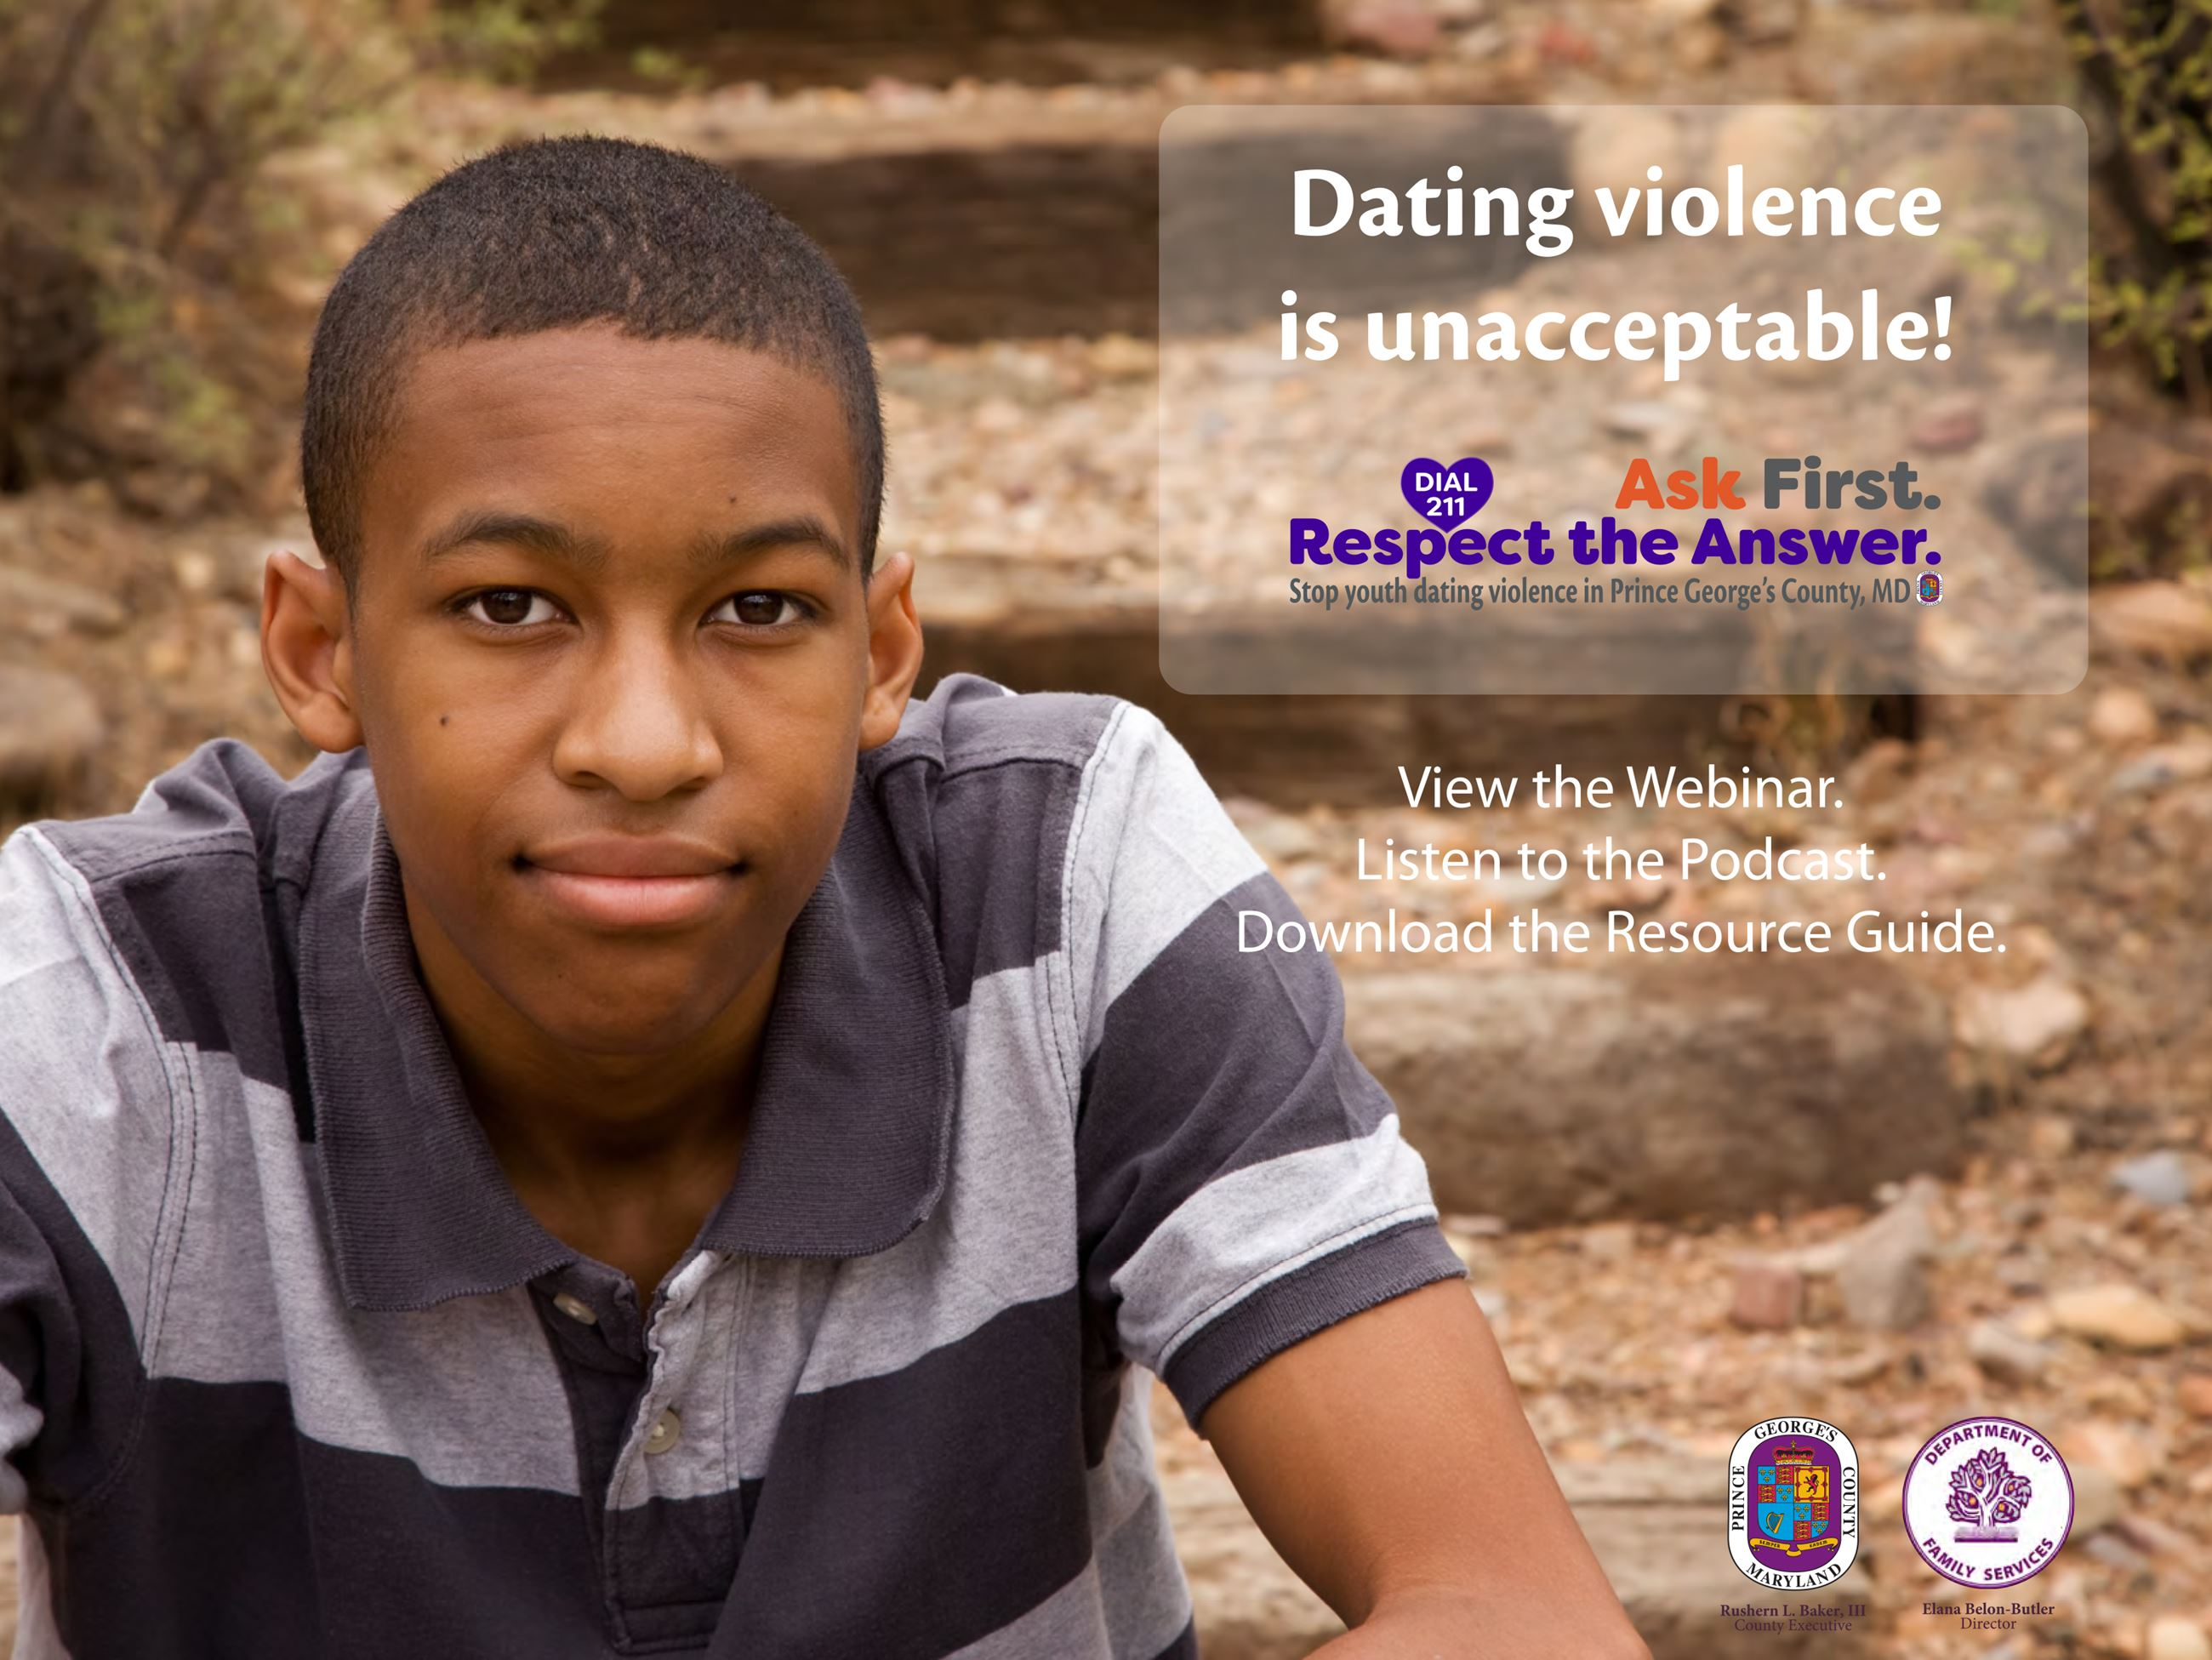 Stop Youth Dating Violence